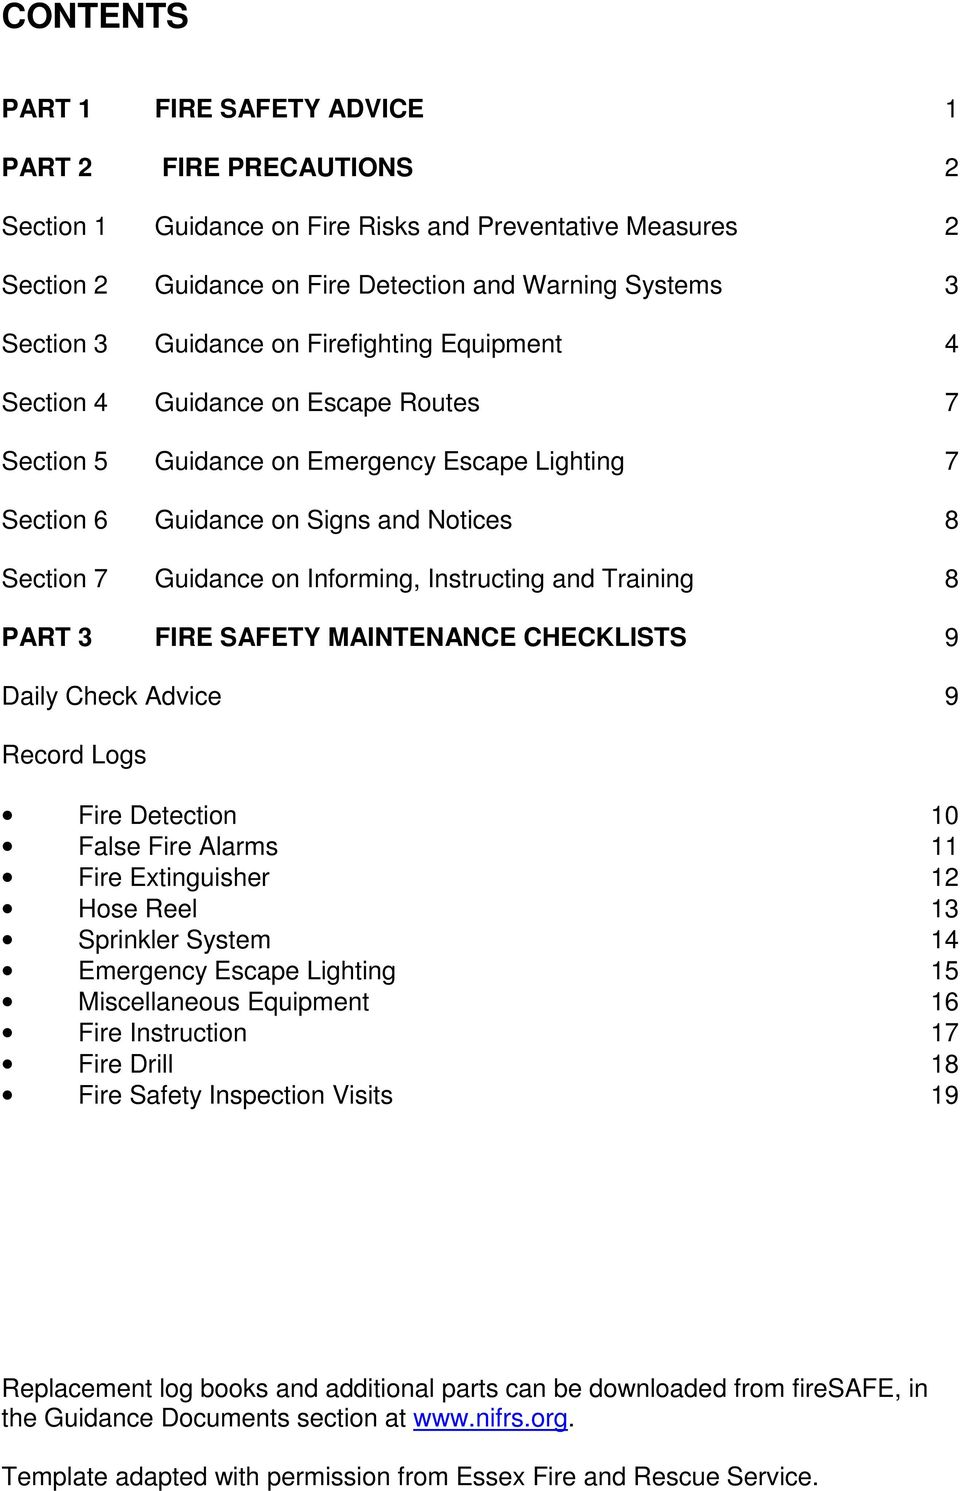 fire safety log book occupier check training.html